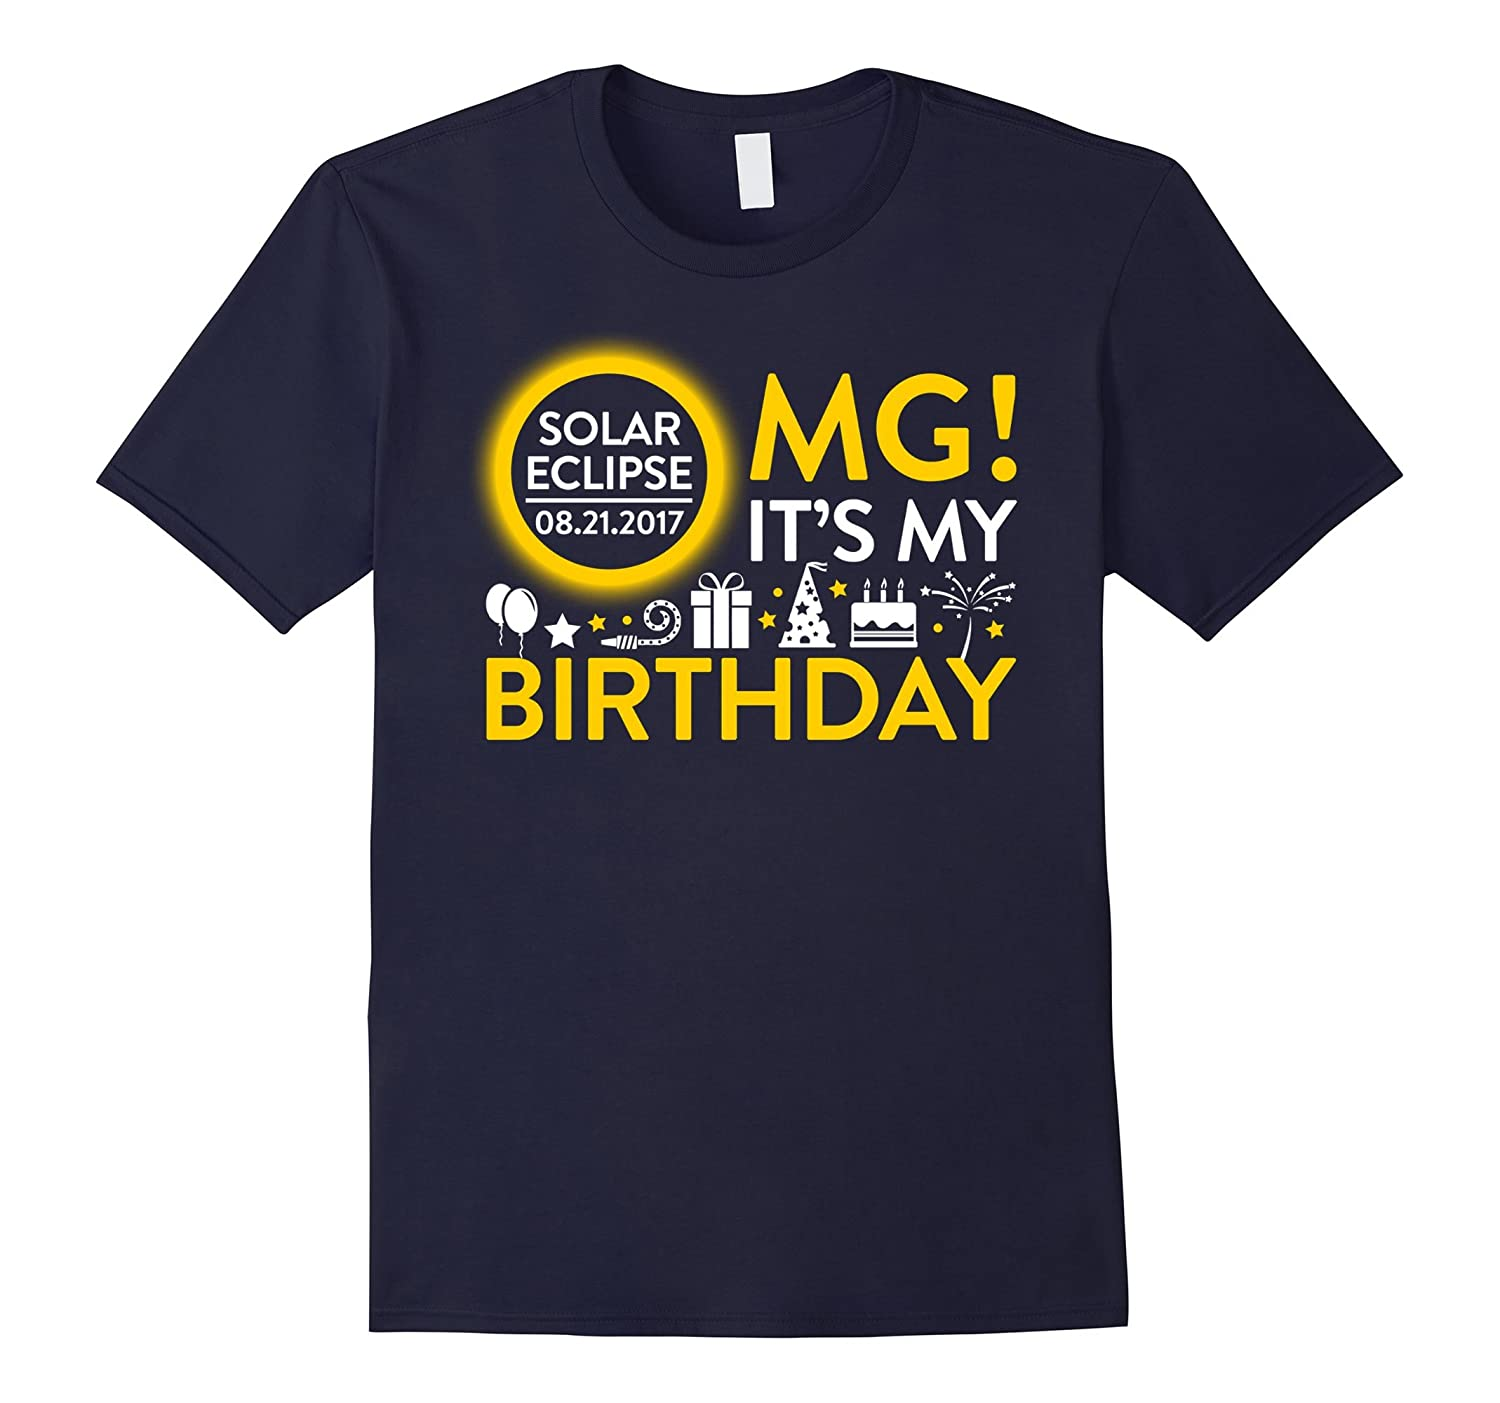 Omg Solar Eclipse 2017 It's My Birthday T-shirt-BN